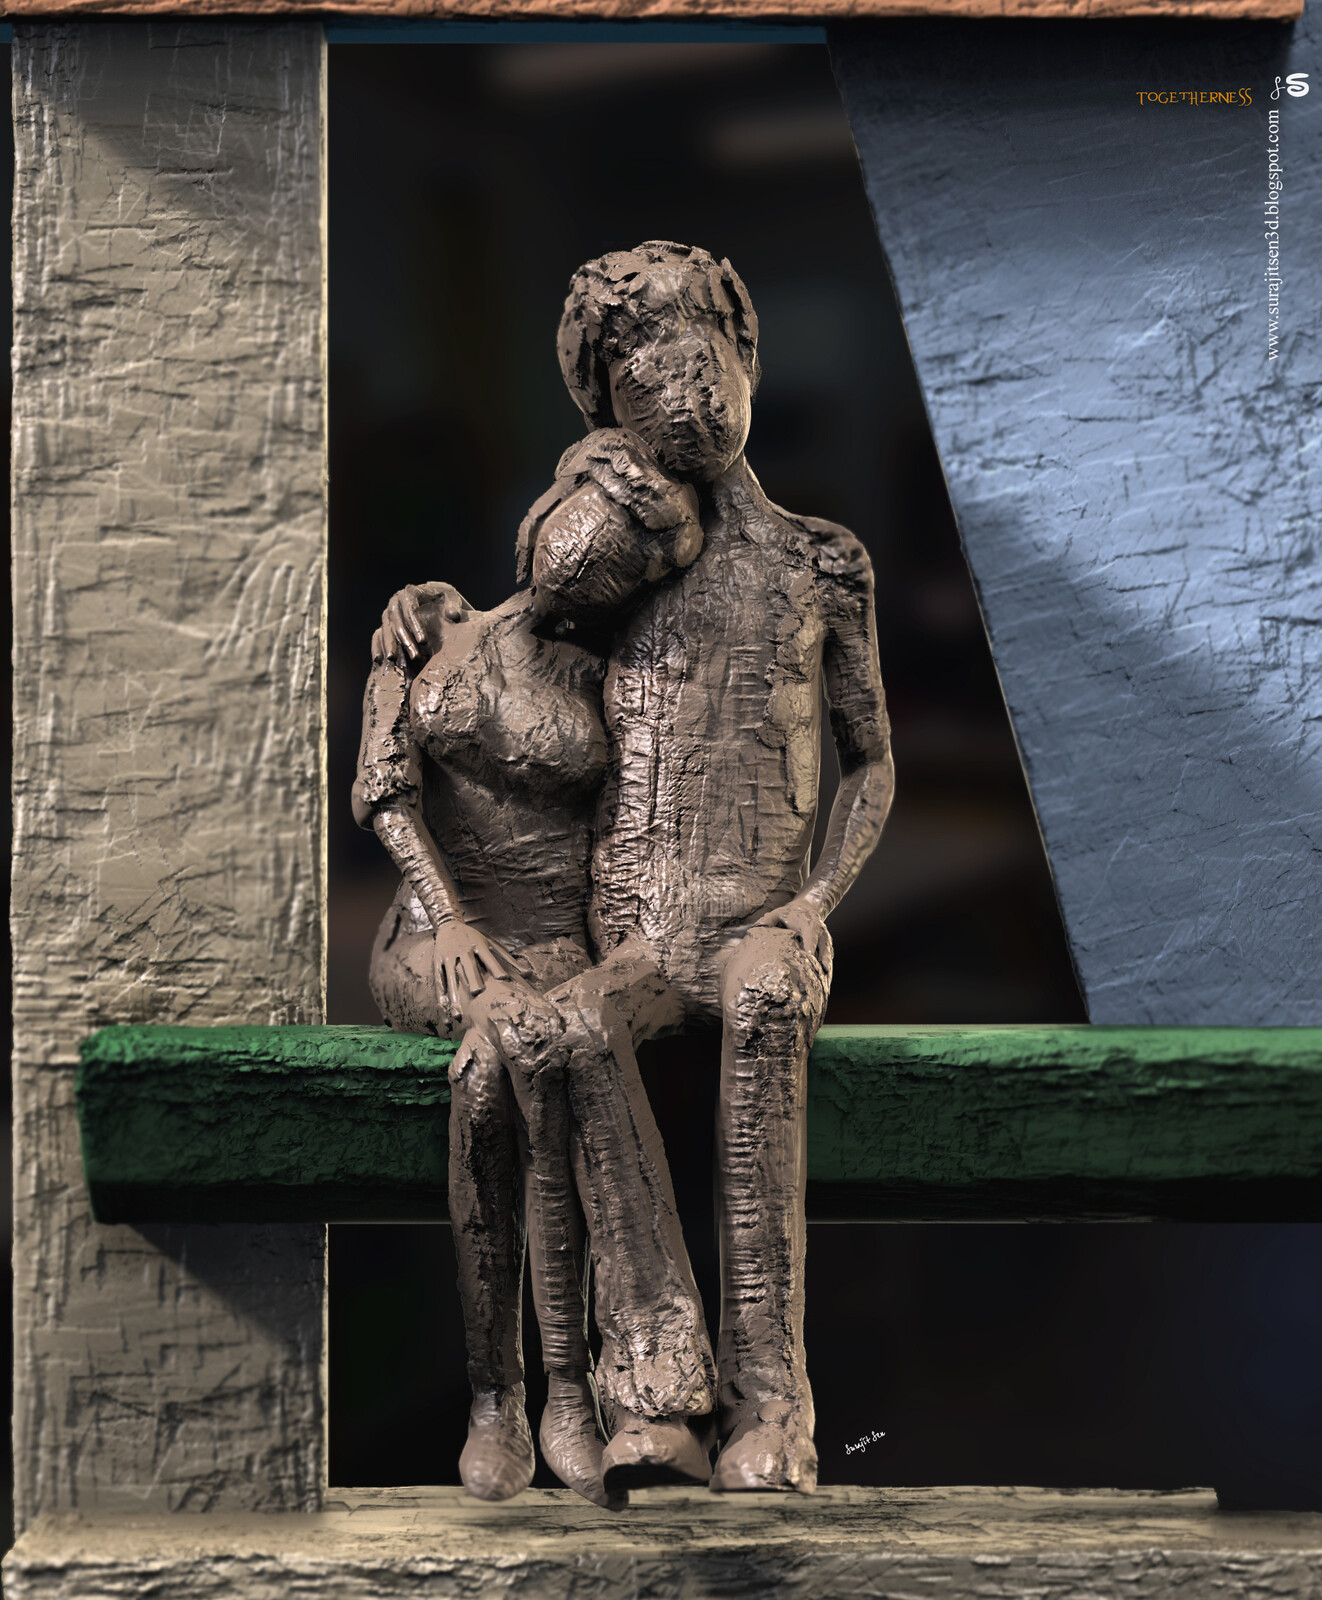 Togetherness. Quick Digital Sculpture. Tried to make a form of my thoughts.